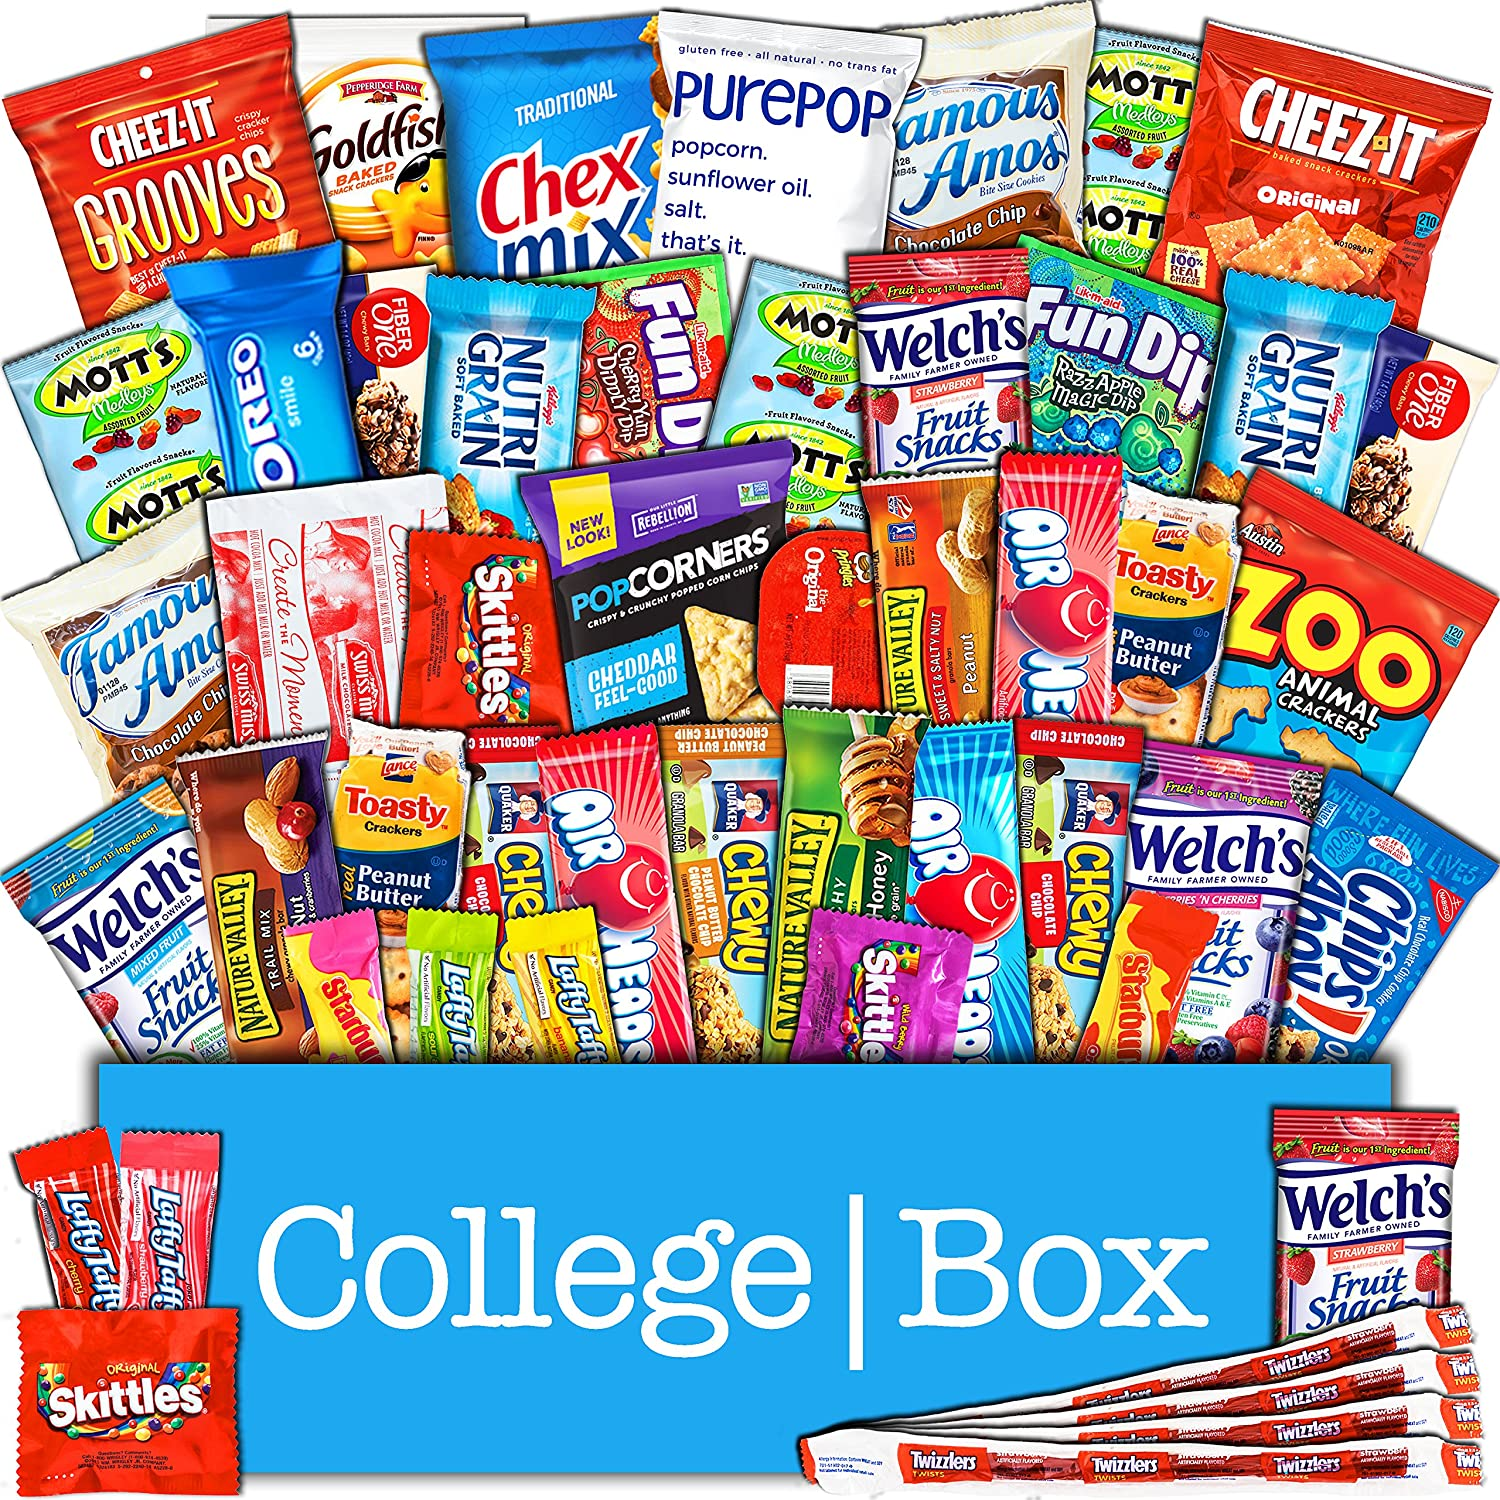 College Box – Bulk Snacks Care Package (50 Count) For College Students   Variety Assortment Gift Box With Treats For Studying And Dorm... by College Box